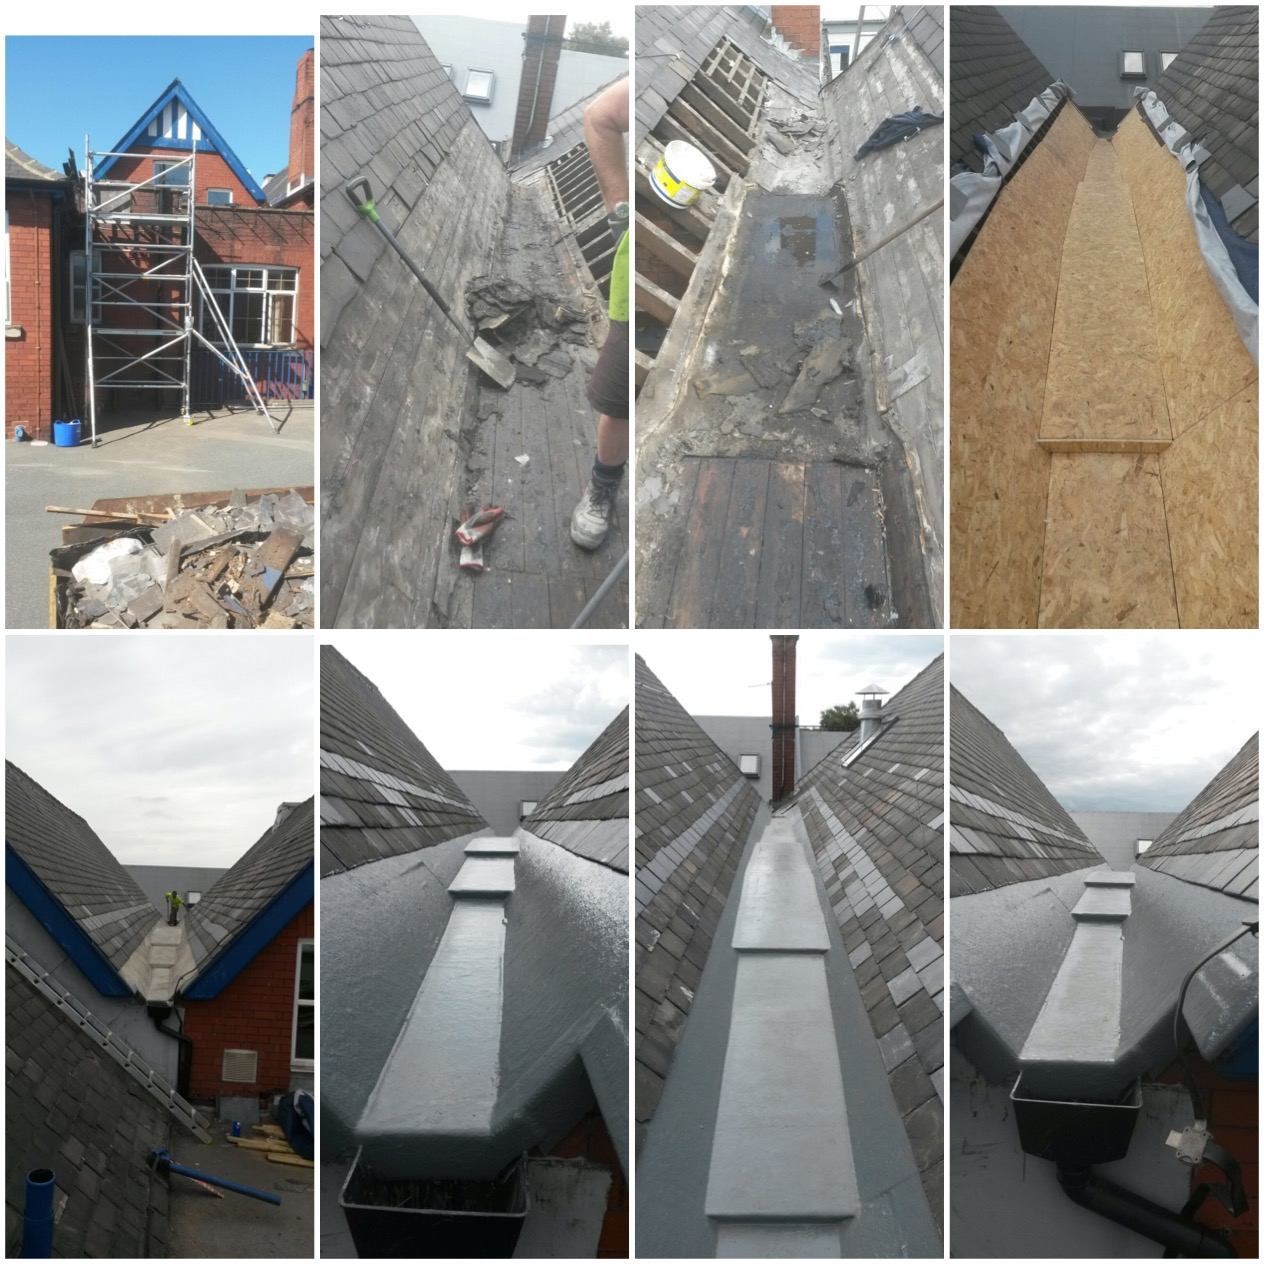 Roofing Works, Thorpe Primary School, Leeds